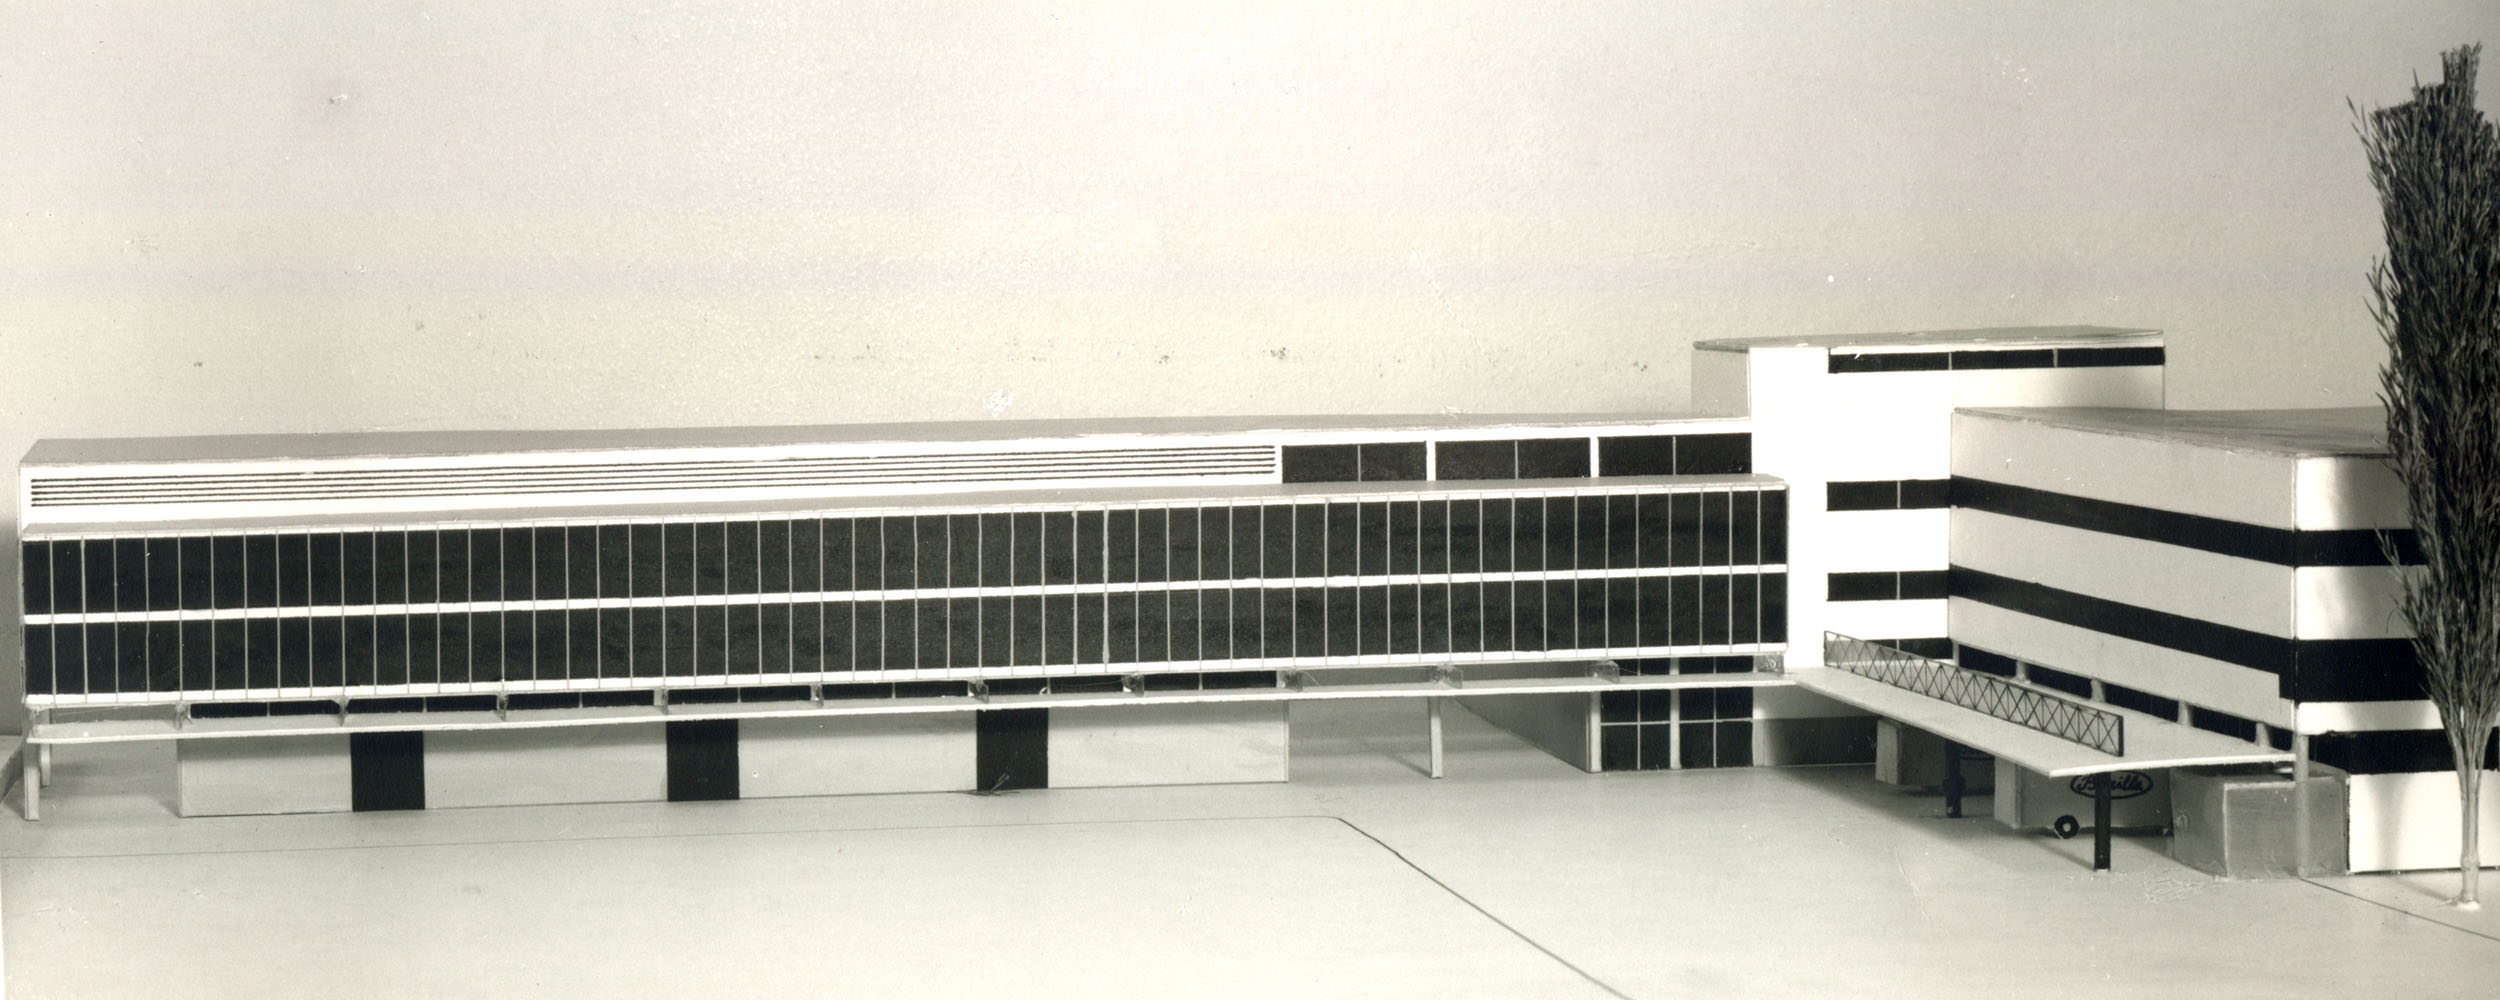 A view of the detailed model with the project of architect Gian Luigi Giordani for the northern structure, that in the end was not built [ASB, O, Stabilimenti, Foto Vaghi].